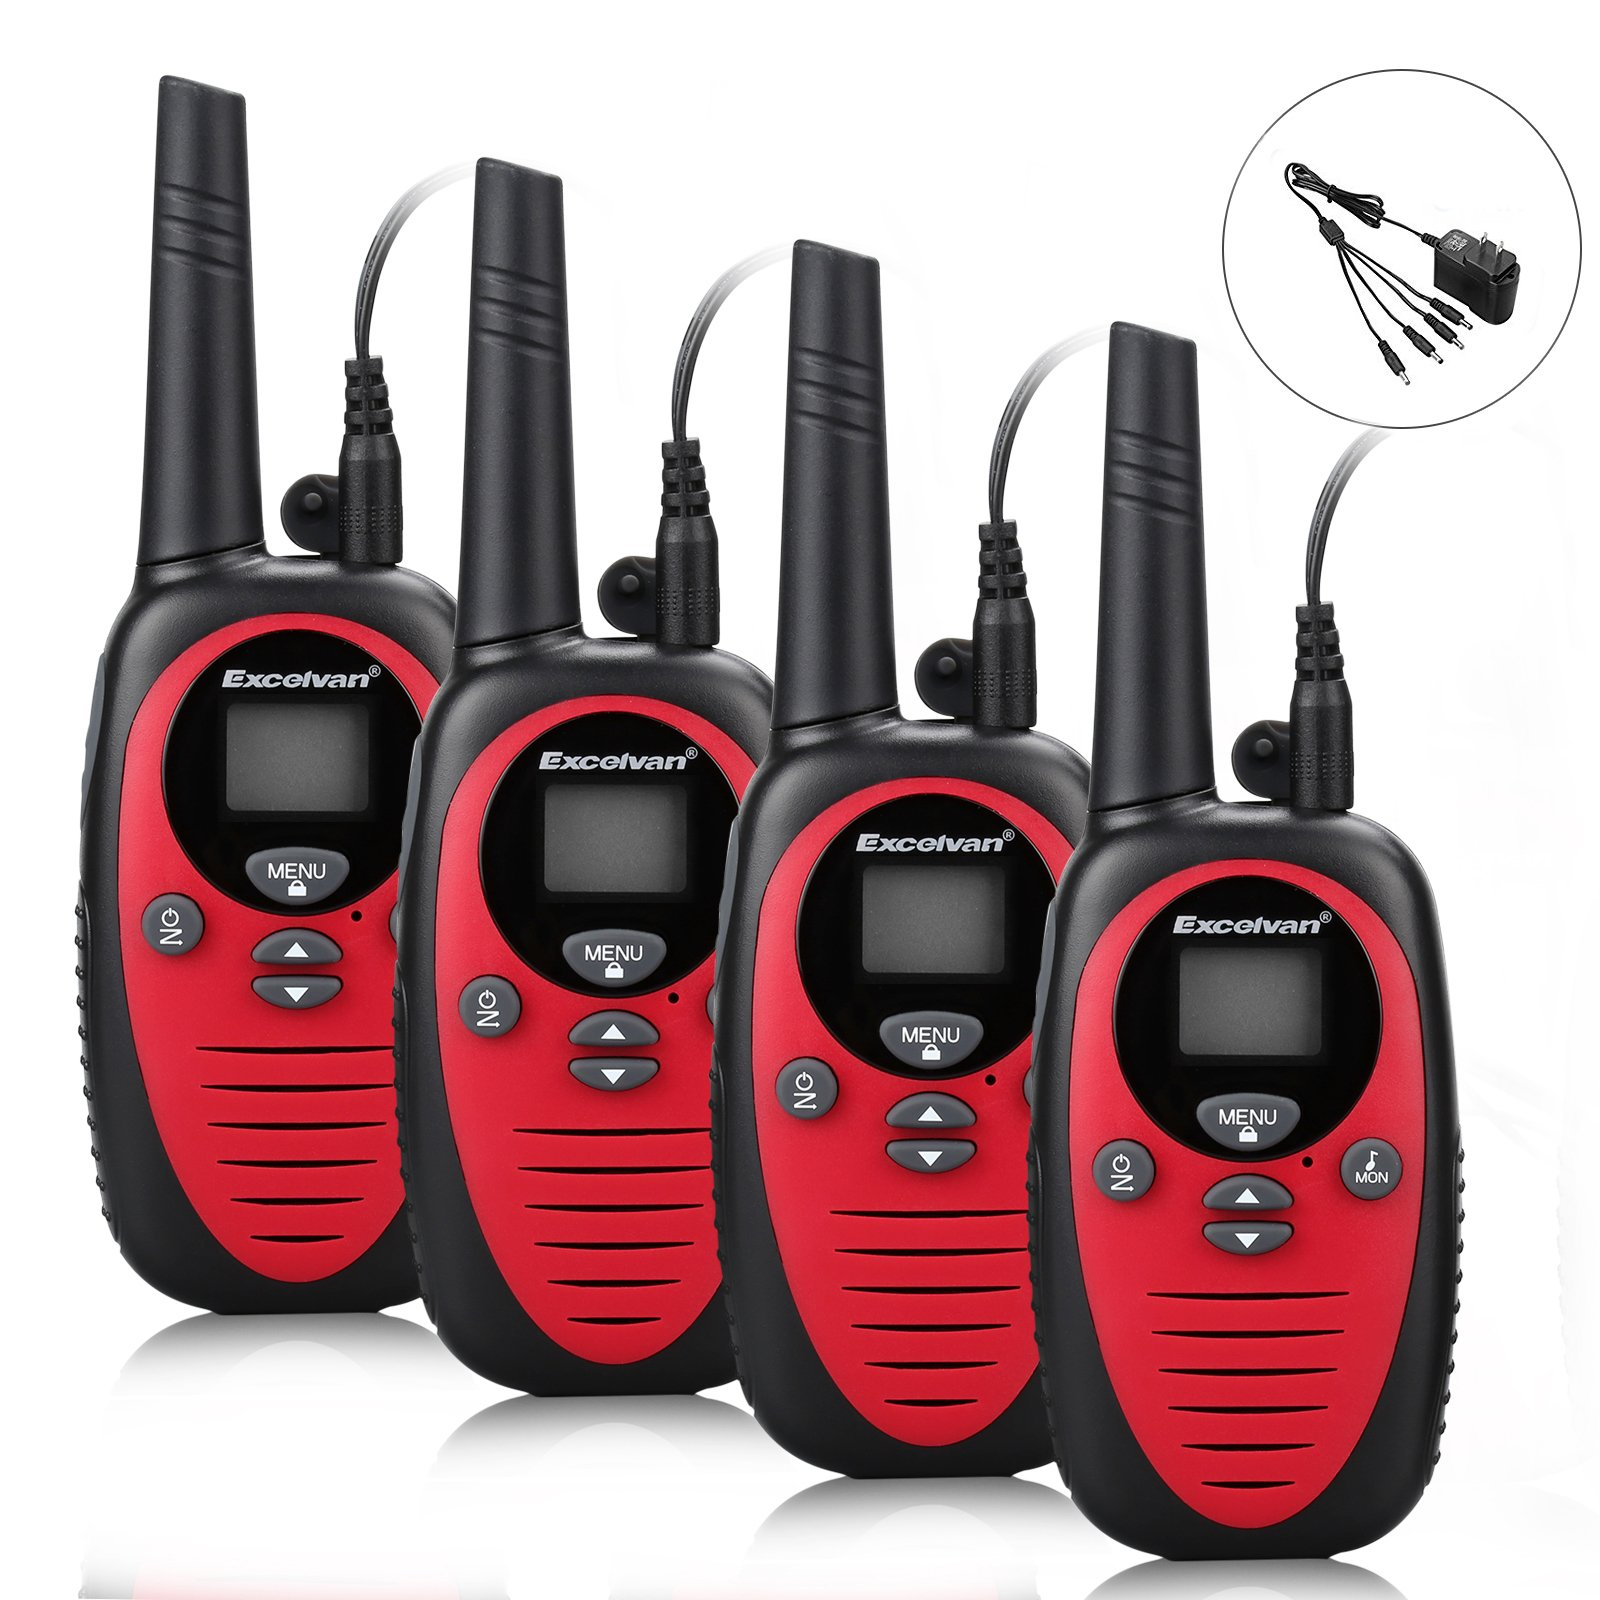 Excelvan 22 Channel FRS GMRS Dual Band 2 Way Radio Long Range Up to 3000M/1.9MI Range (MAX 3.1MI in Open Field) UHF Handheld Walkie Talkie with 1-to-4 Branch Power Adapter (4 Pack, Red)